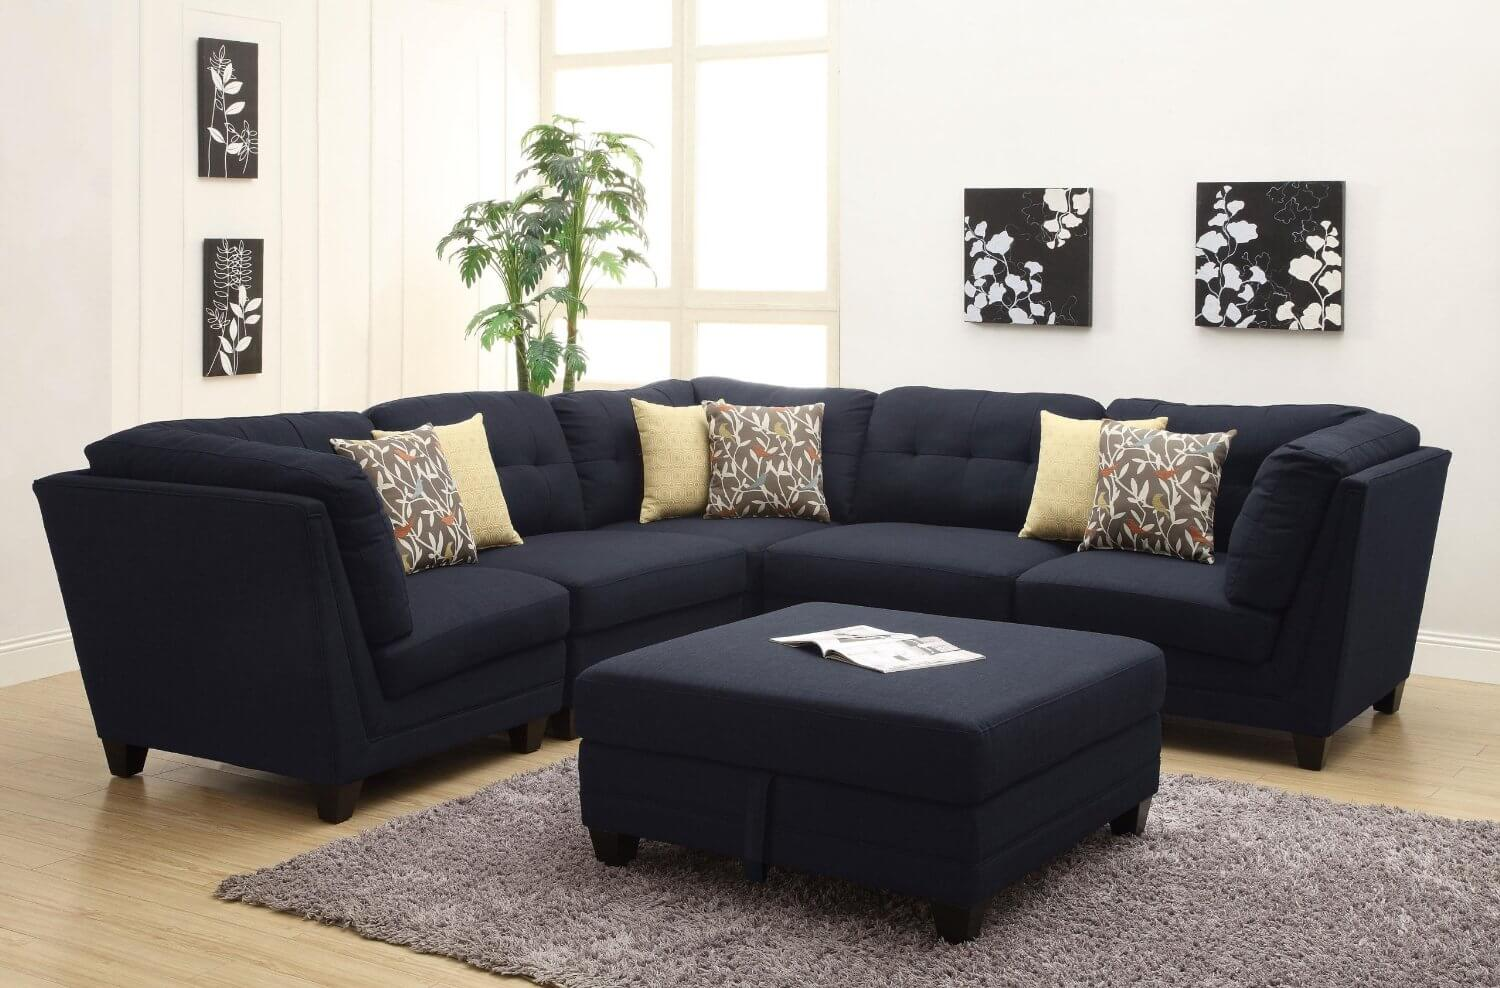 Black Sectional Couches black fabric sectional sofa - creditrestore